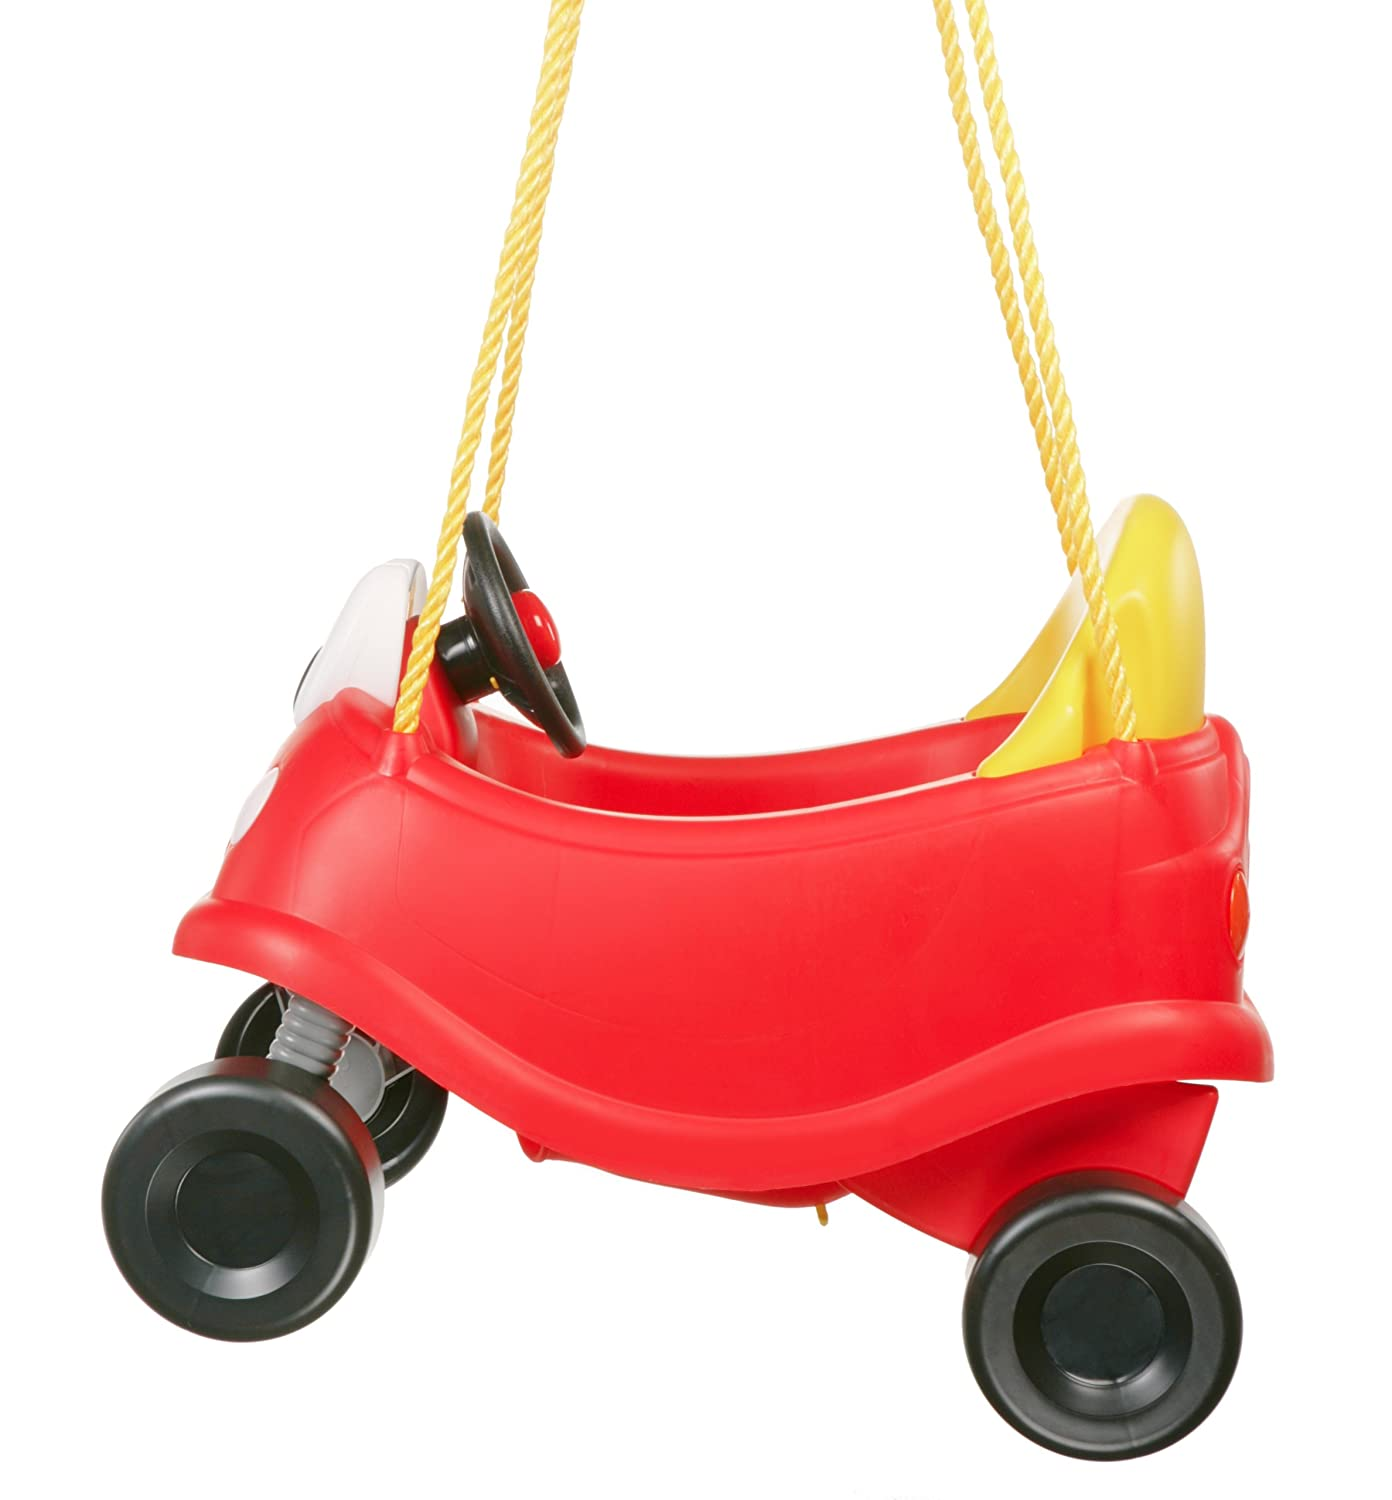 Amazon Little Tikes Cozy Coupe First Swing Toys & Games